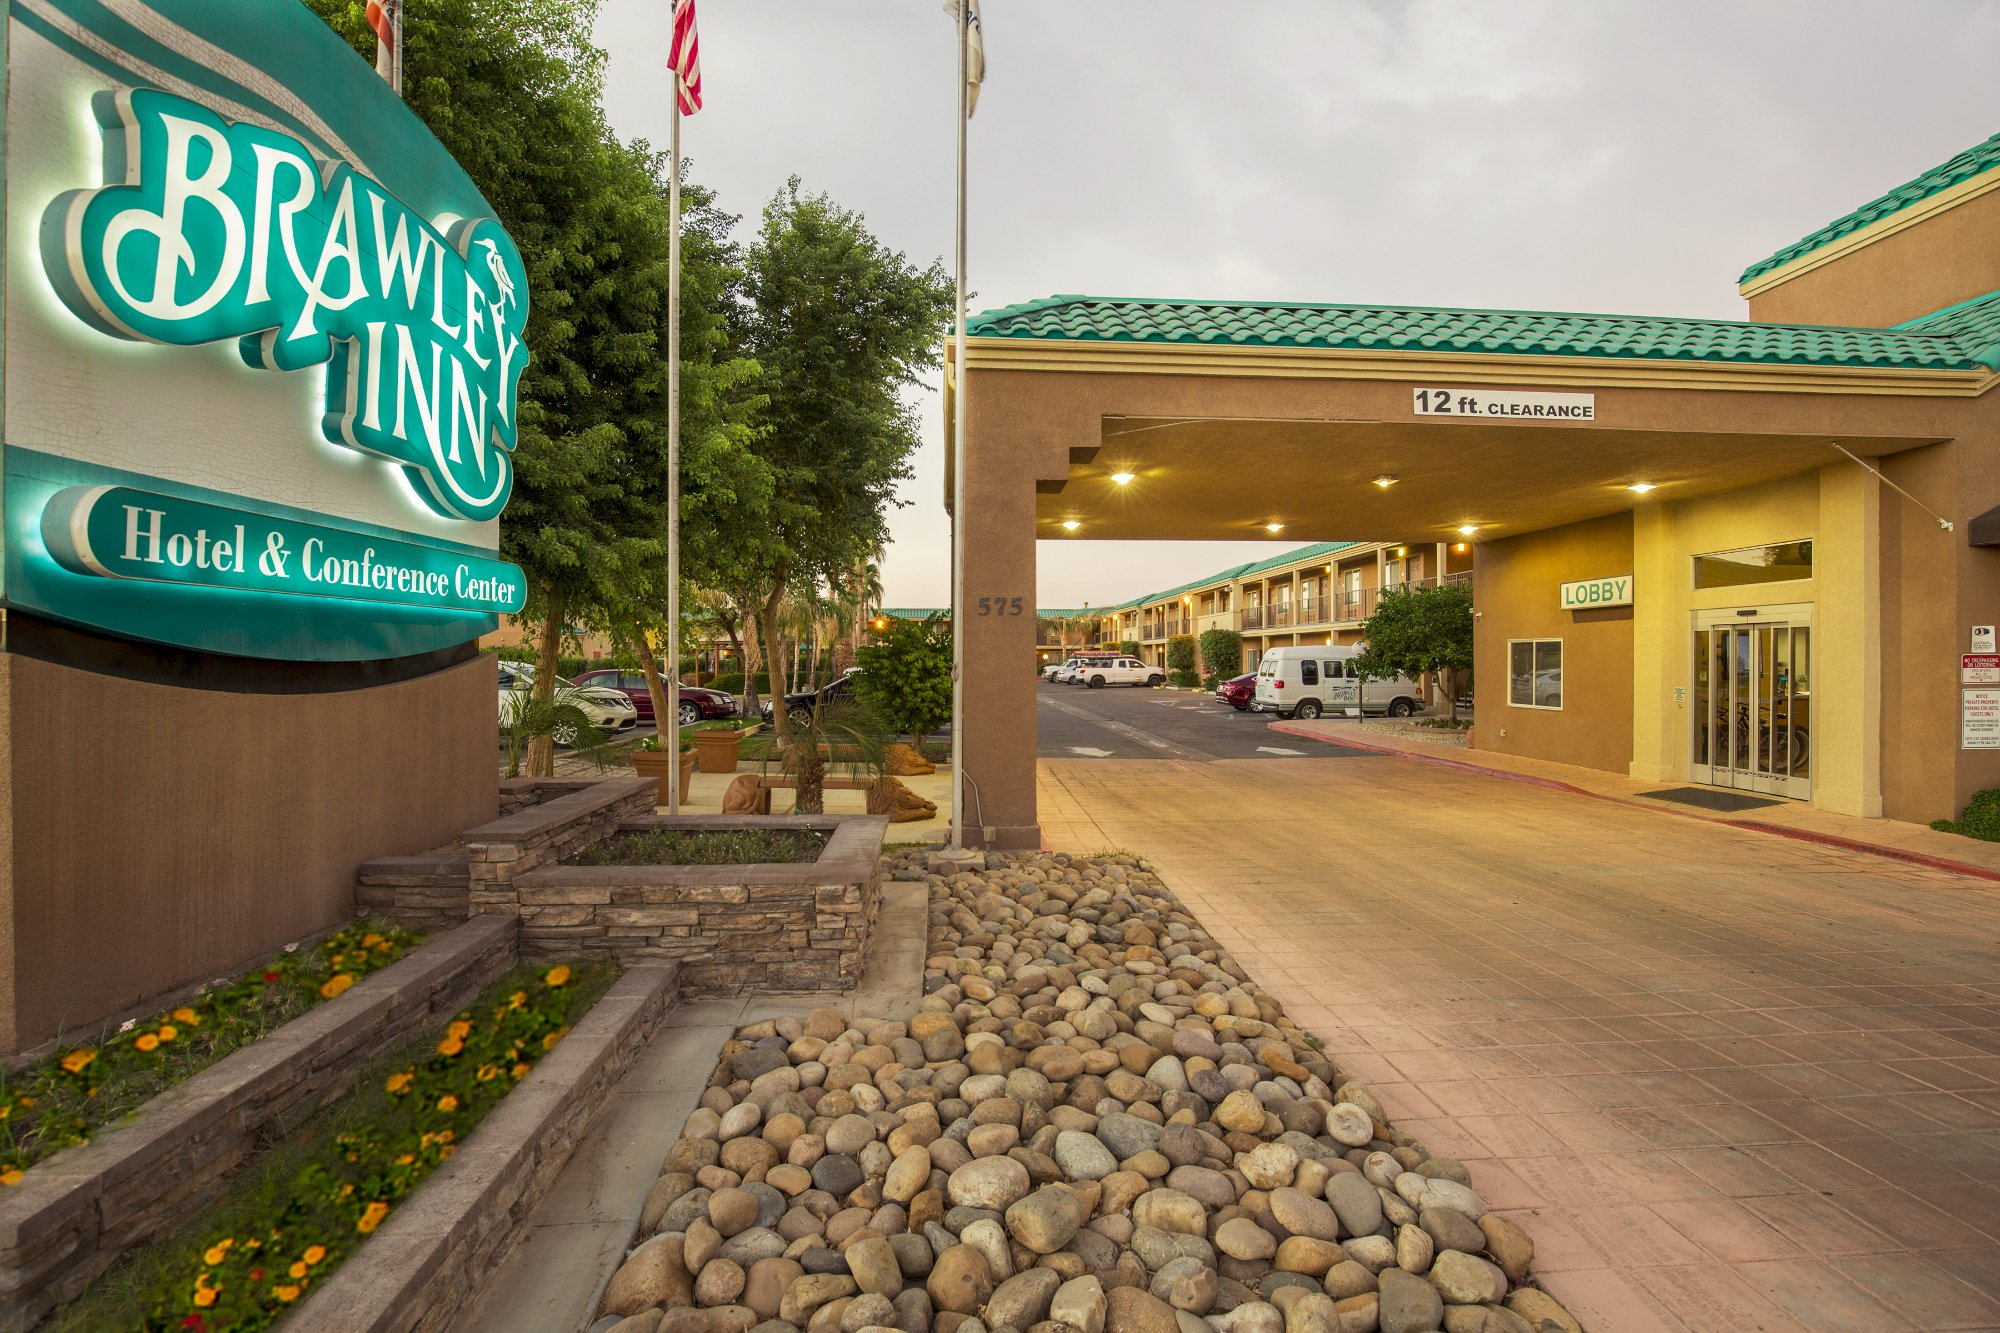 Brawley Inn Hotel & Conference Center